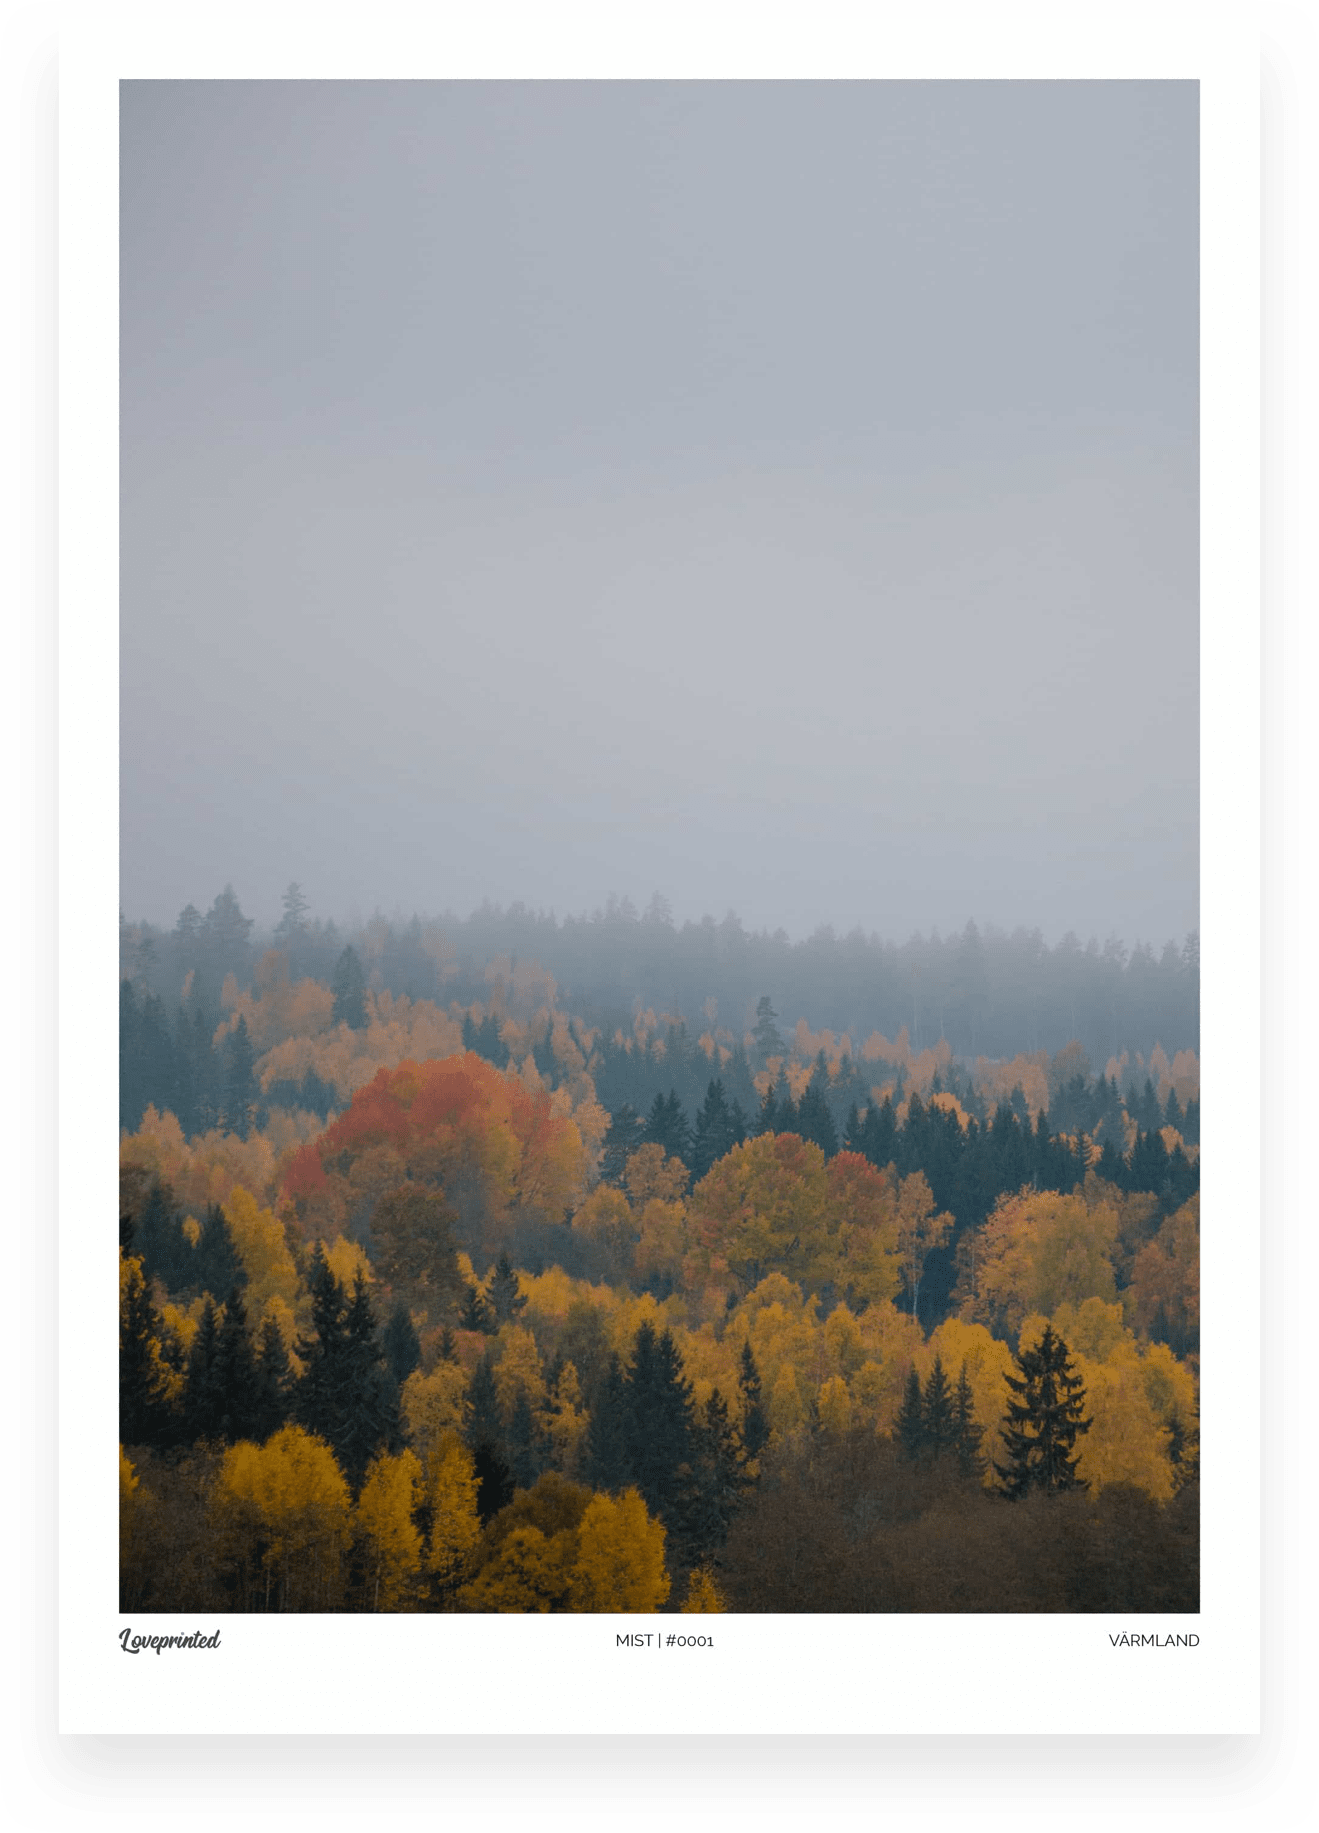 Mist | An Image of a Swedish Forest in the mist made by Loveprinted